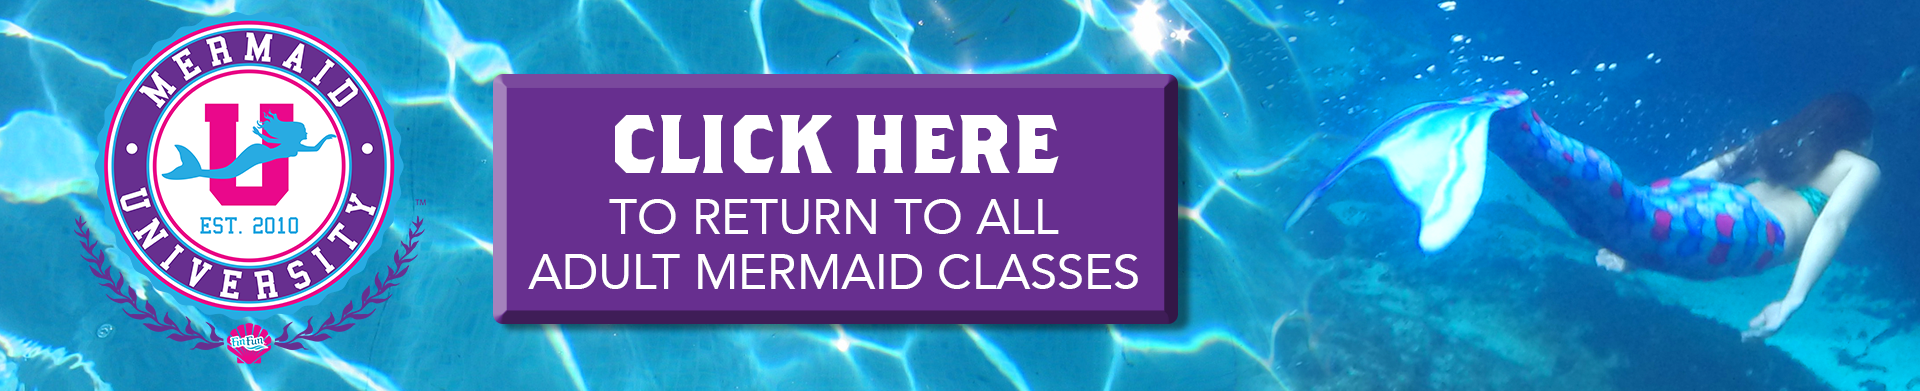 Click Here to return to adults mermaid classes.png